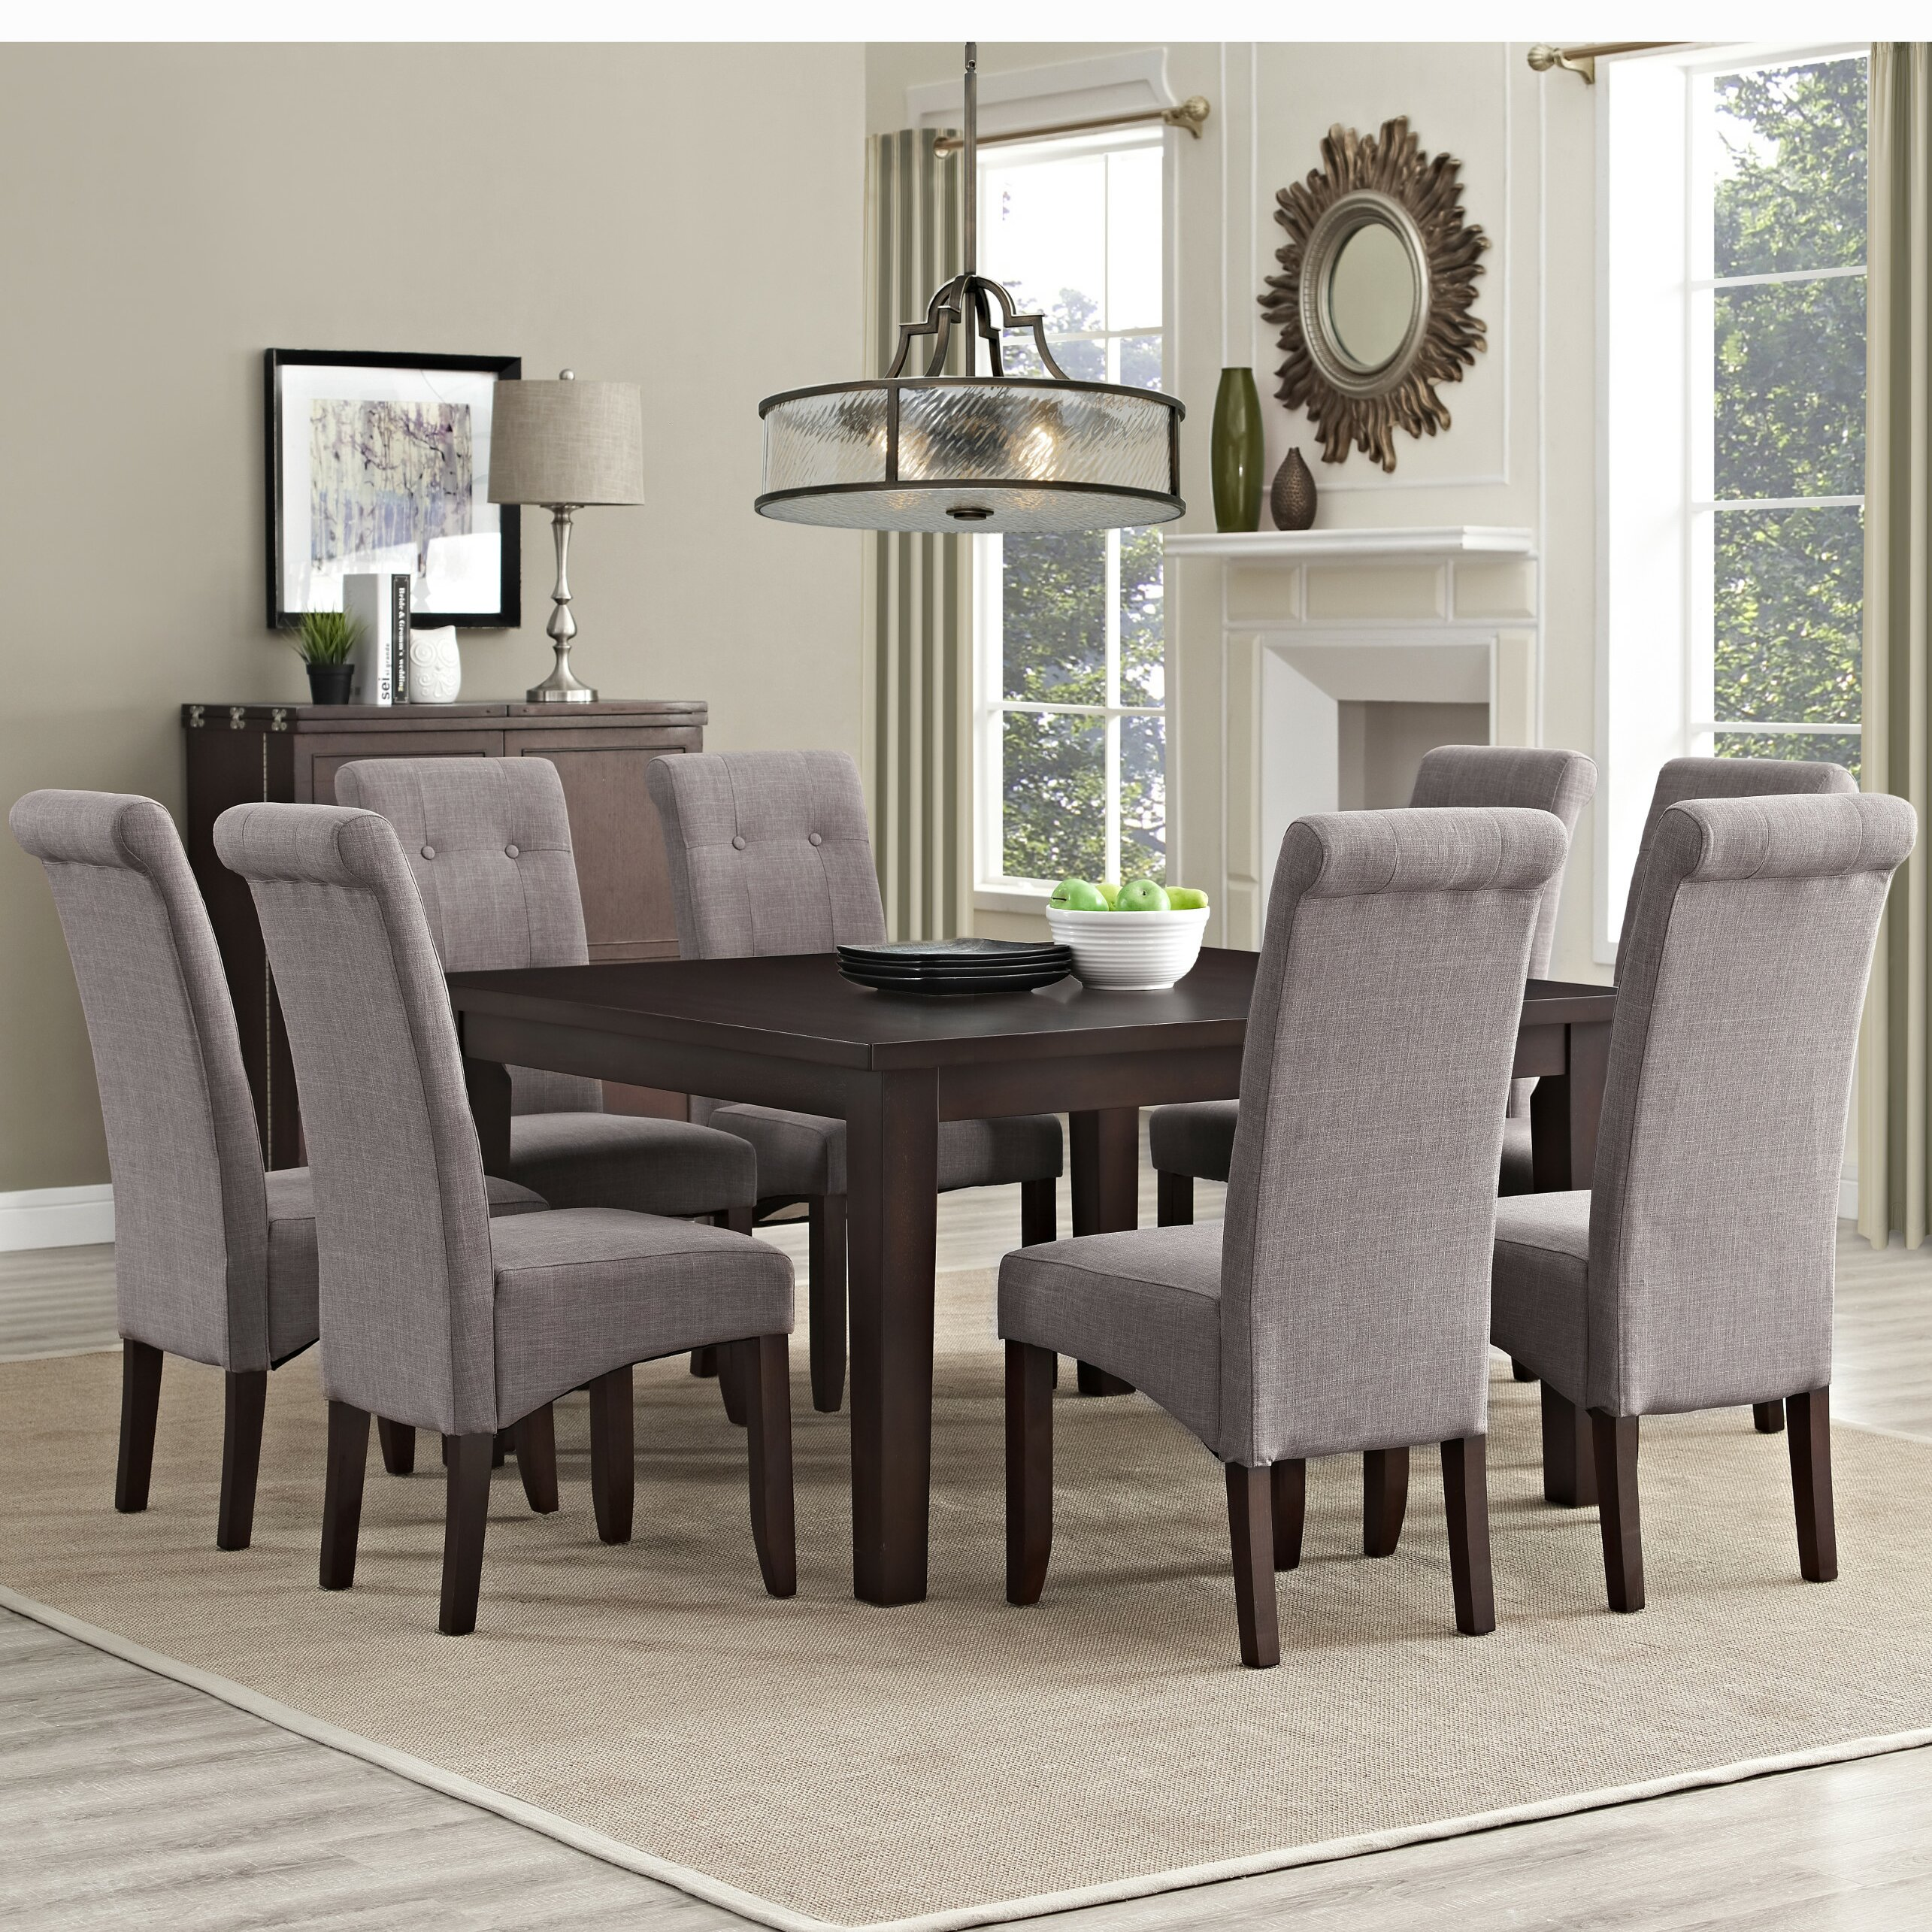 Simpli home eastwood 9 piece dining set reviews wayfair for 2 piece dining room set